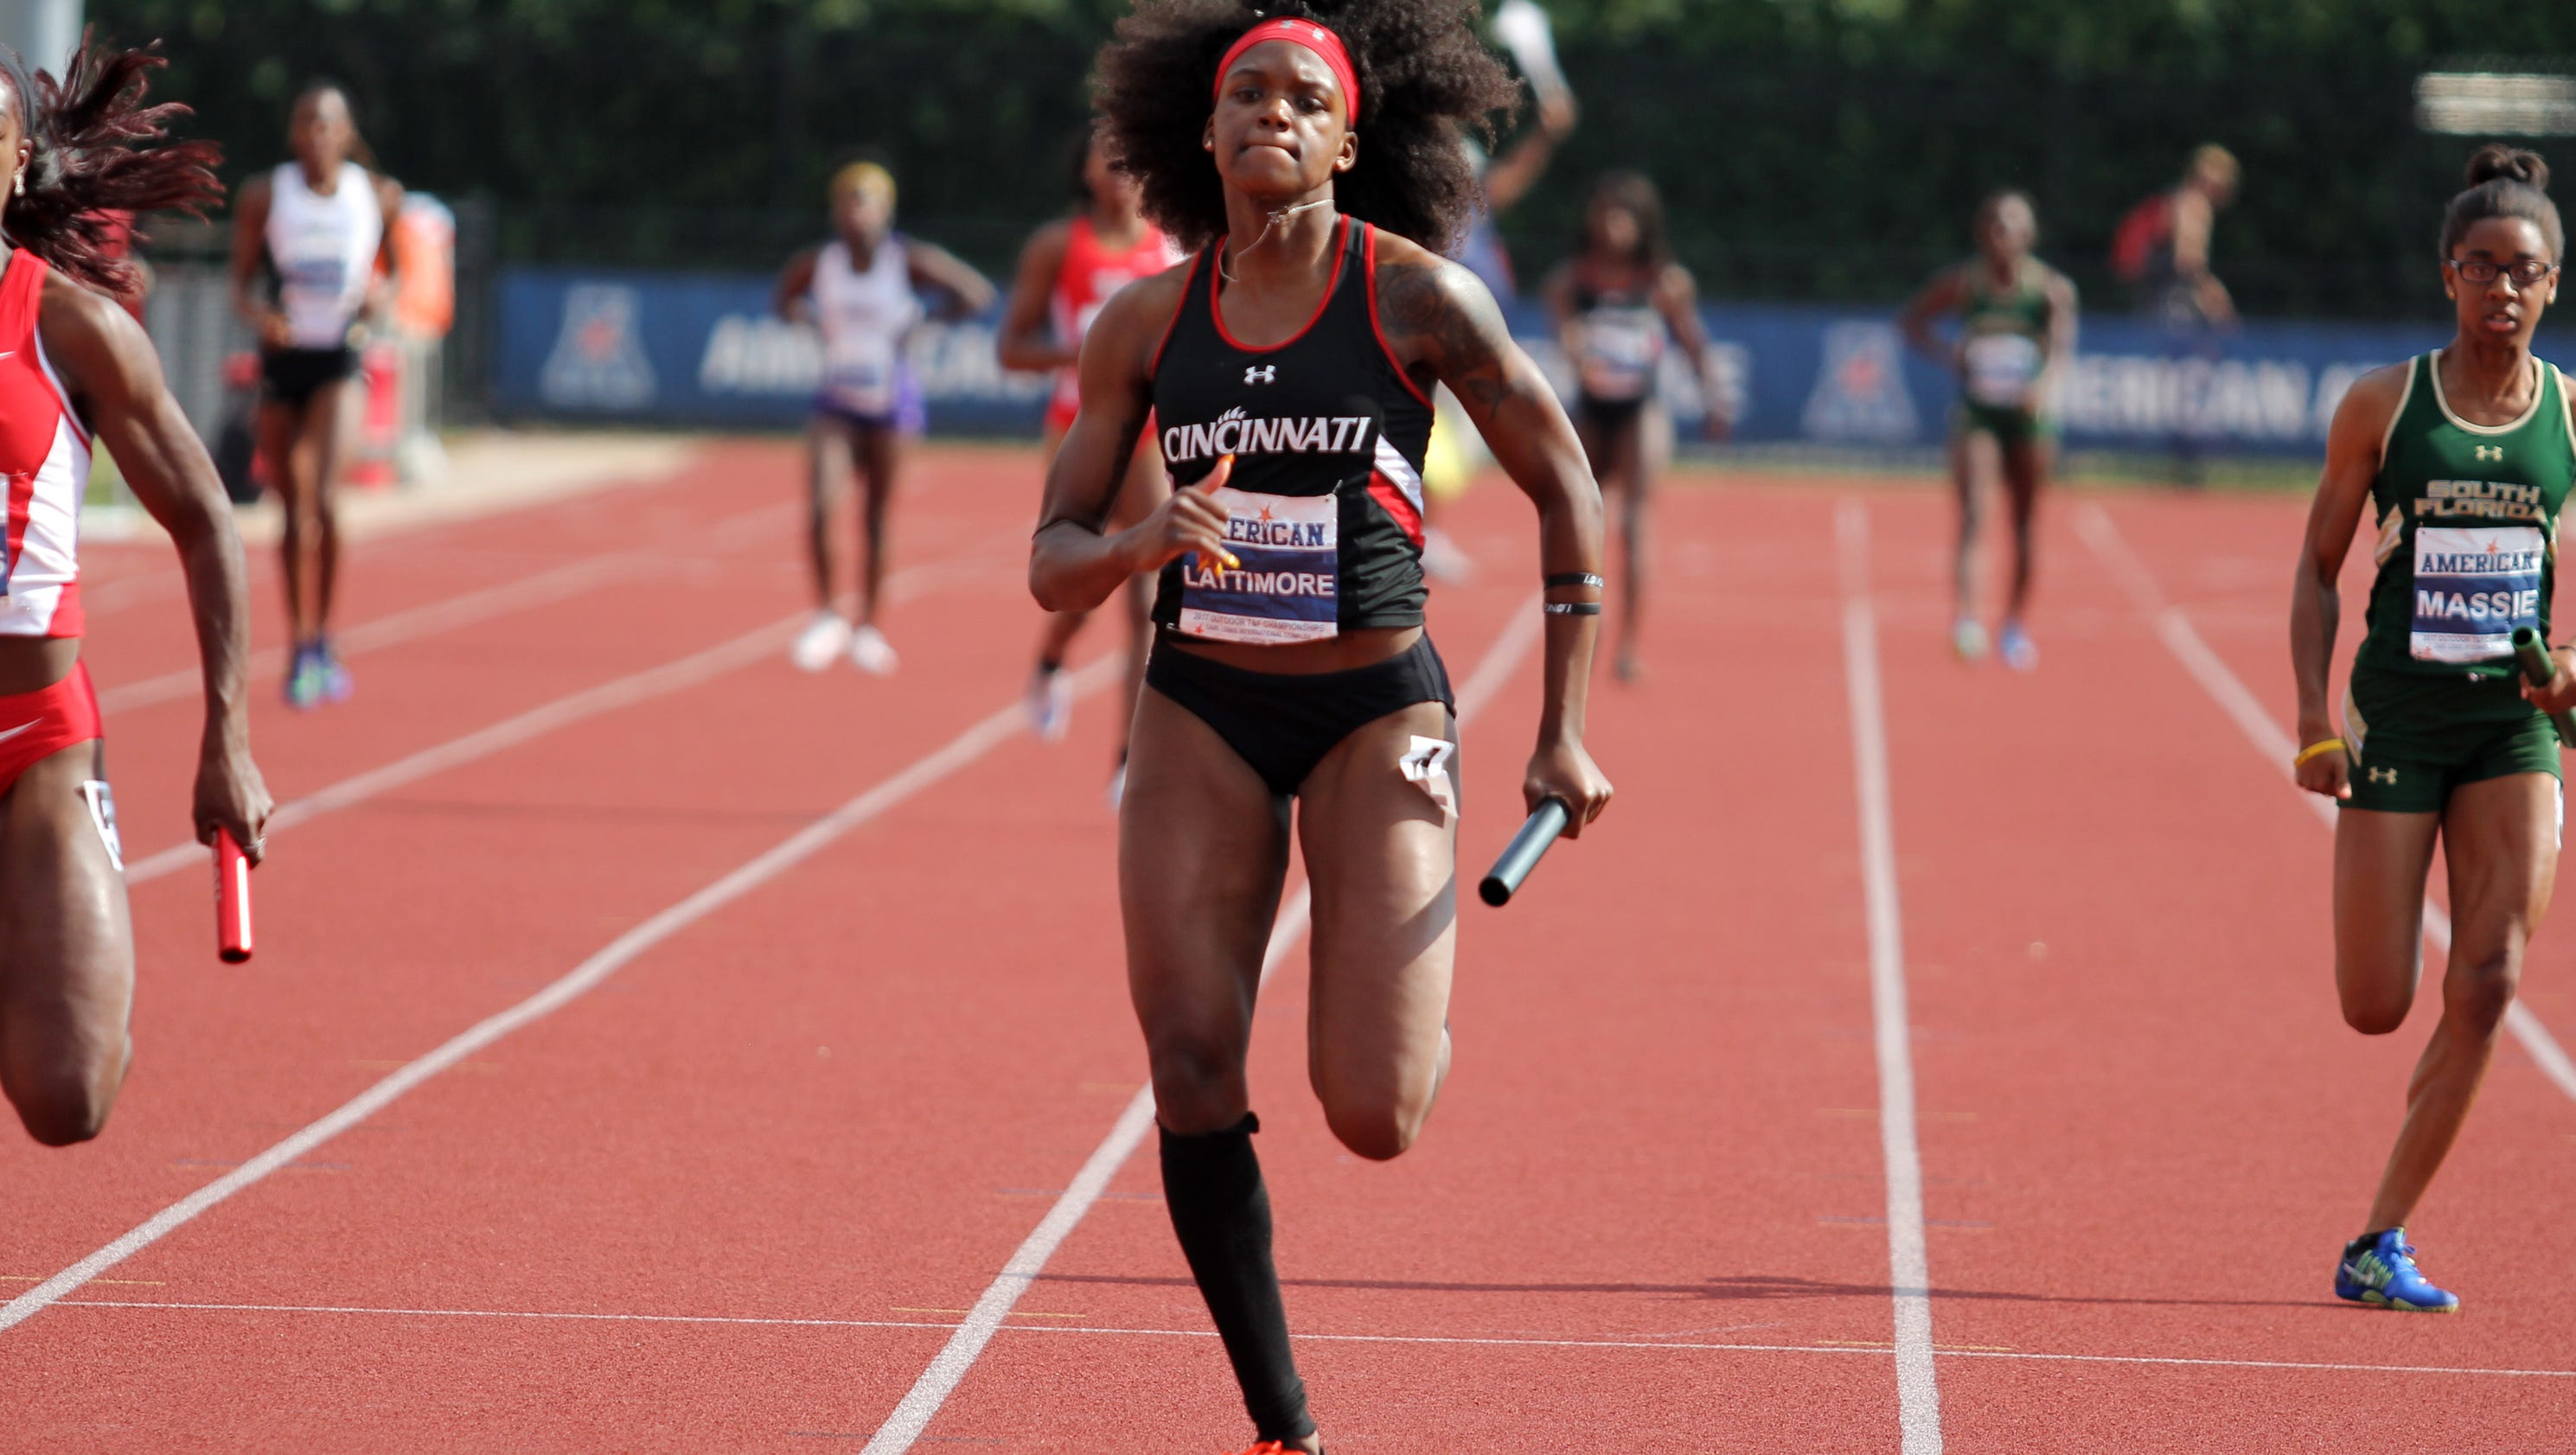 uc women win 2nd straight aac track title